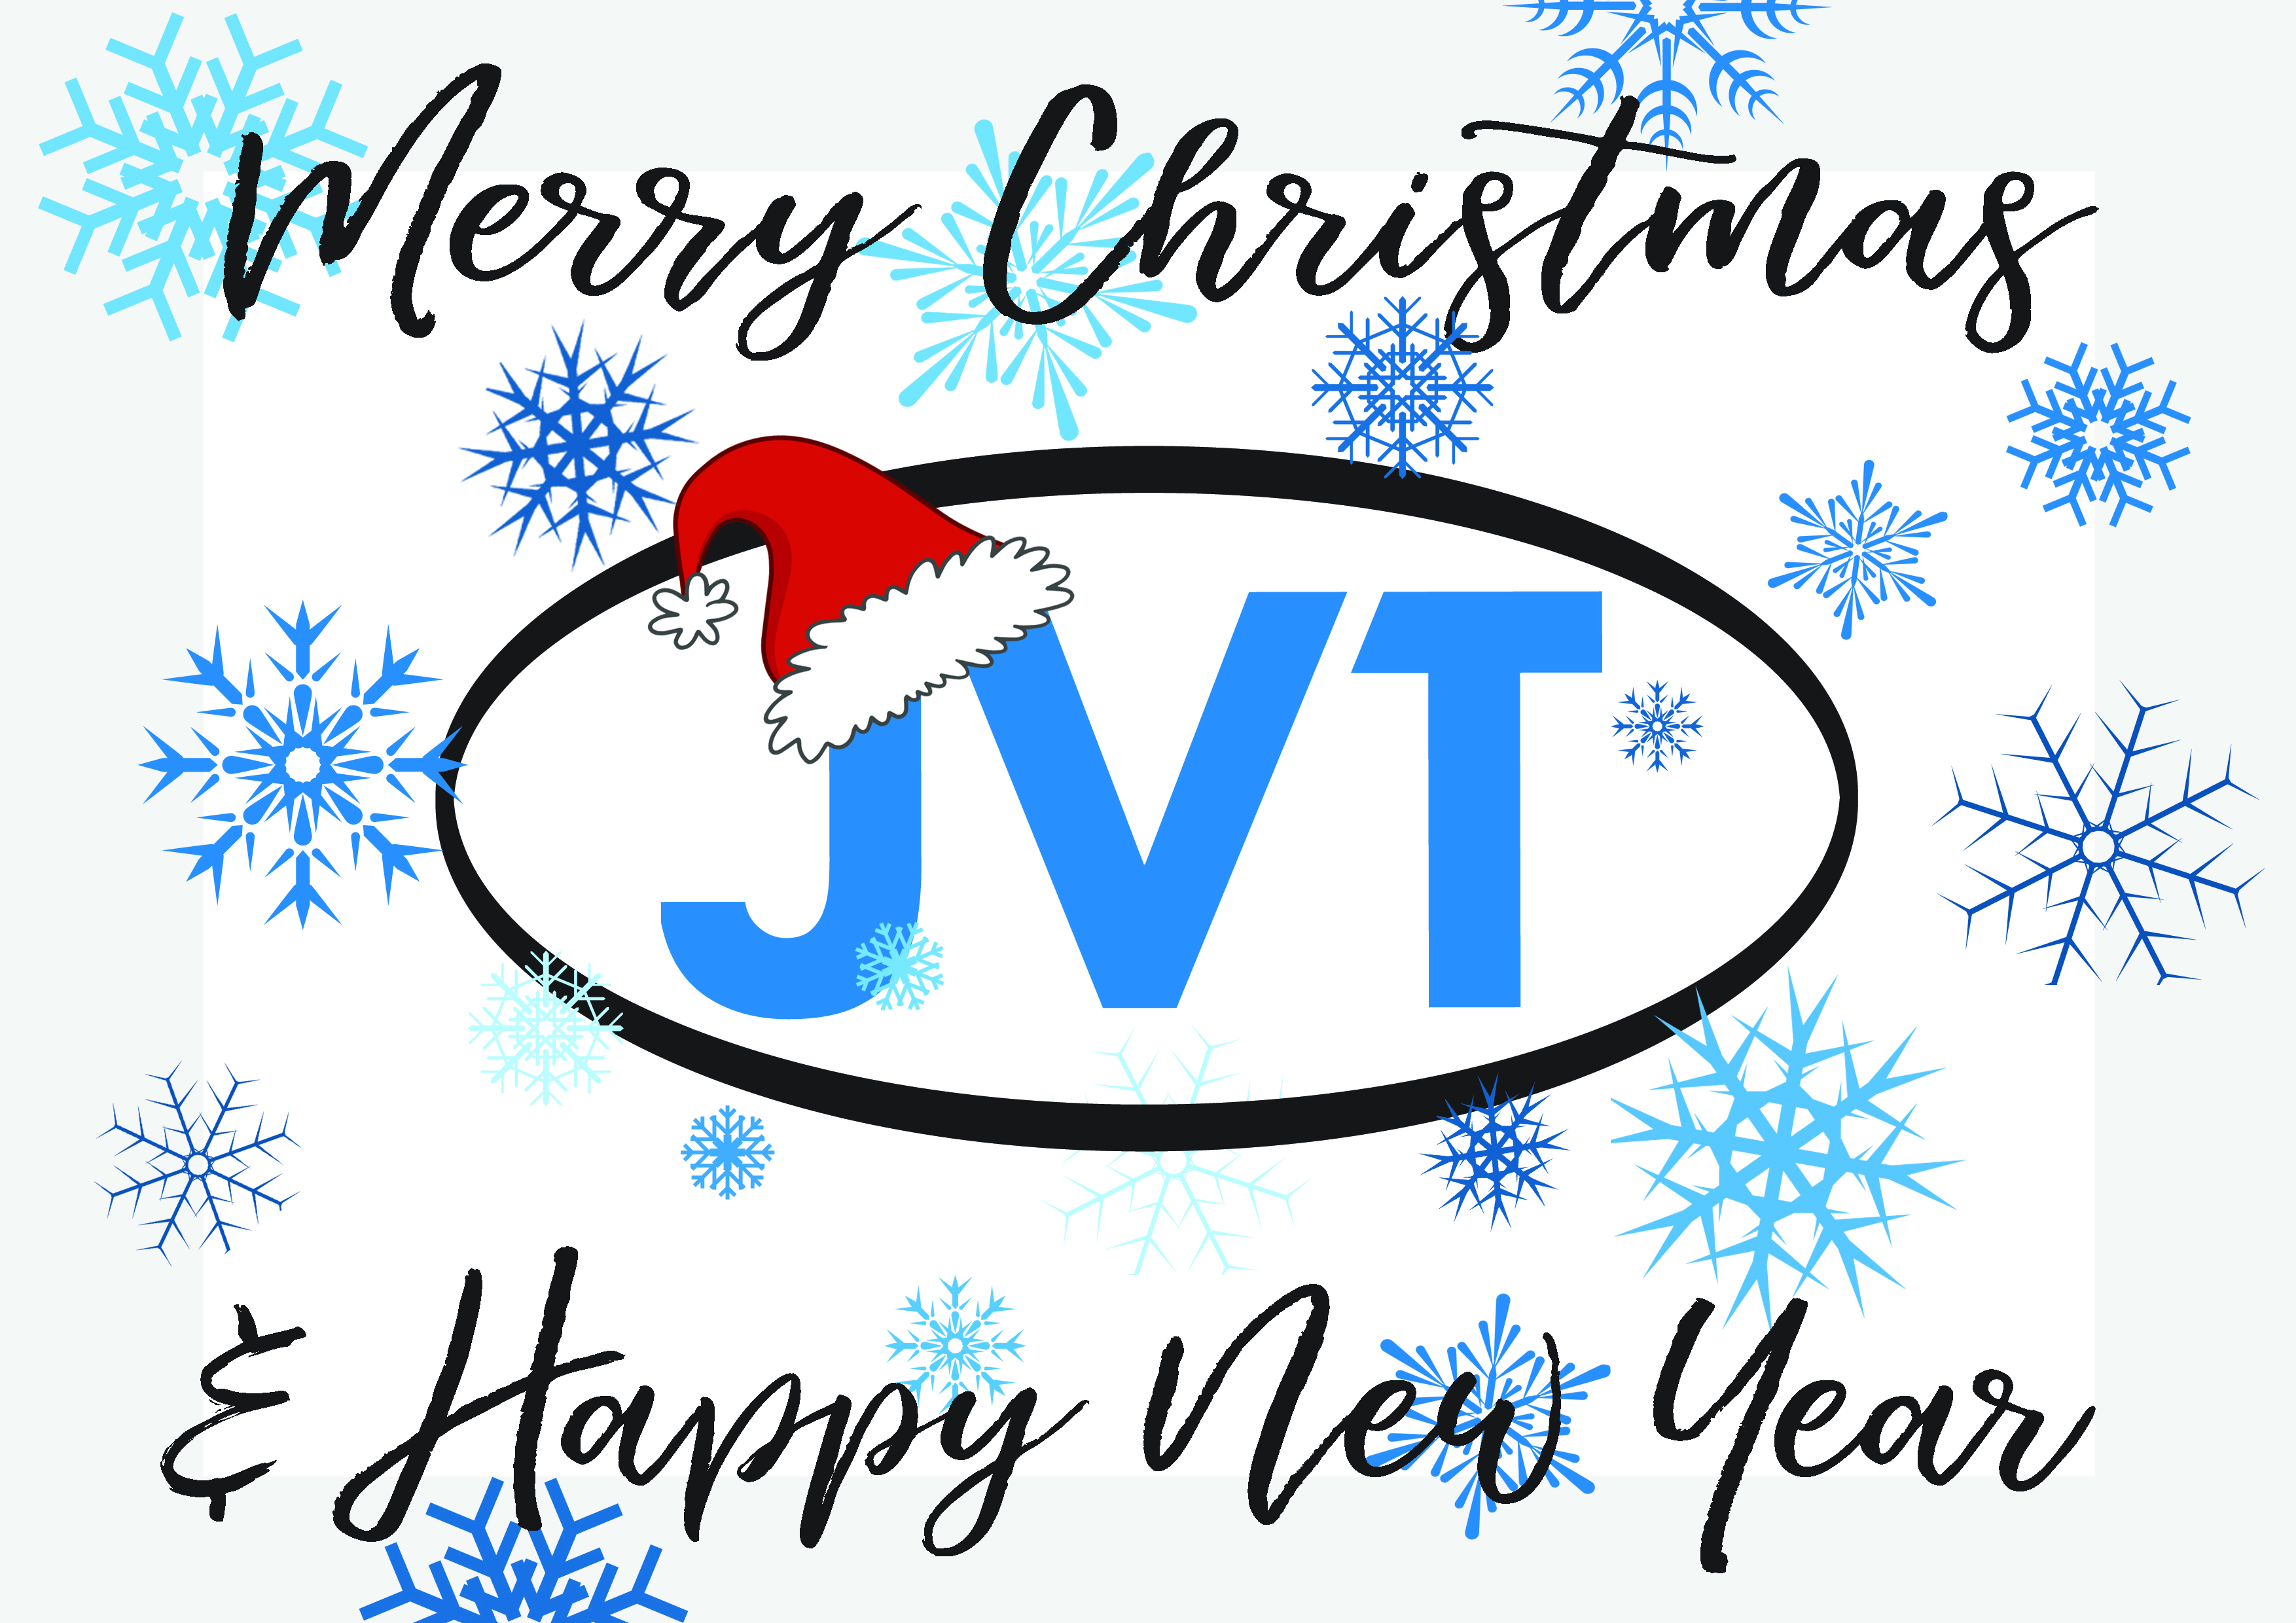 Merry Christmas & Happy New Year from JVT